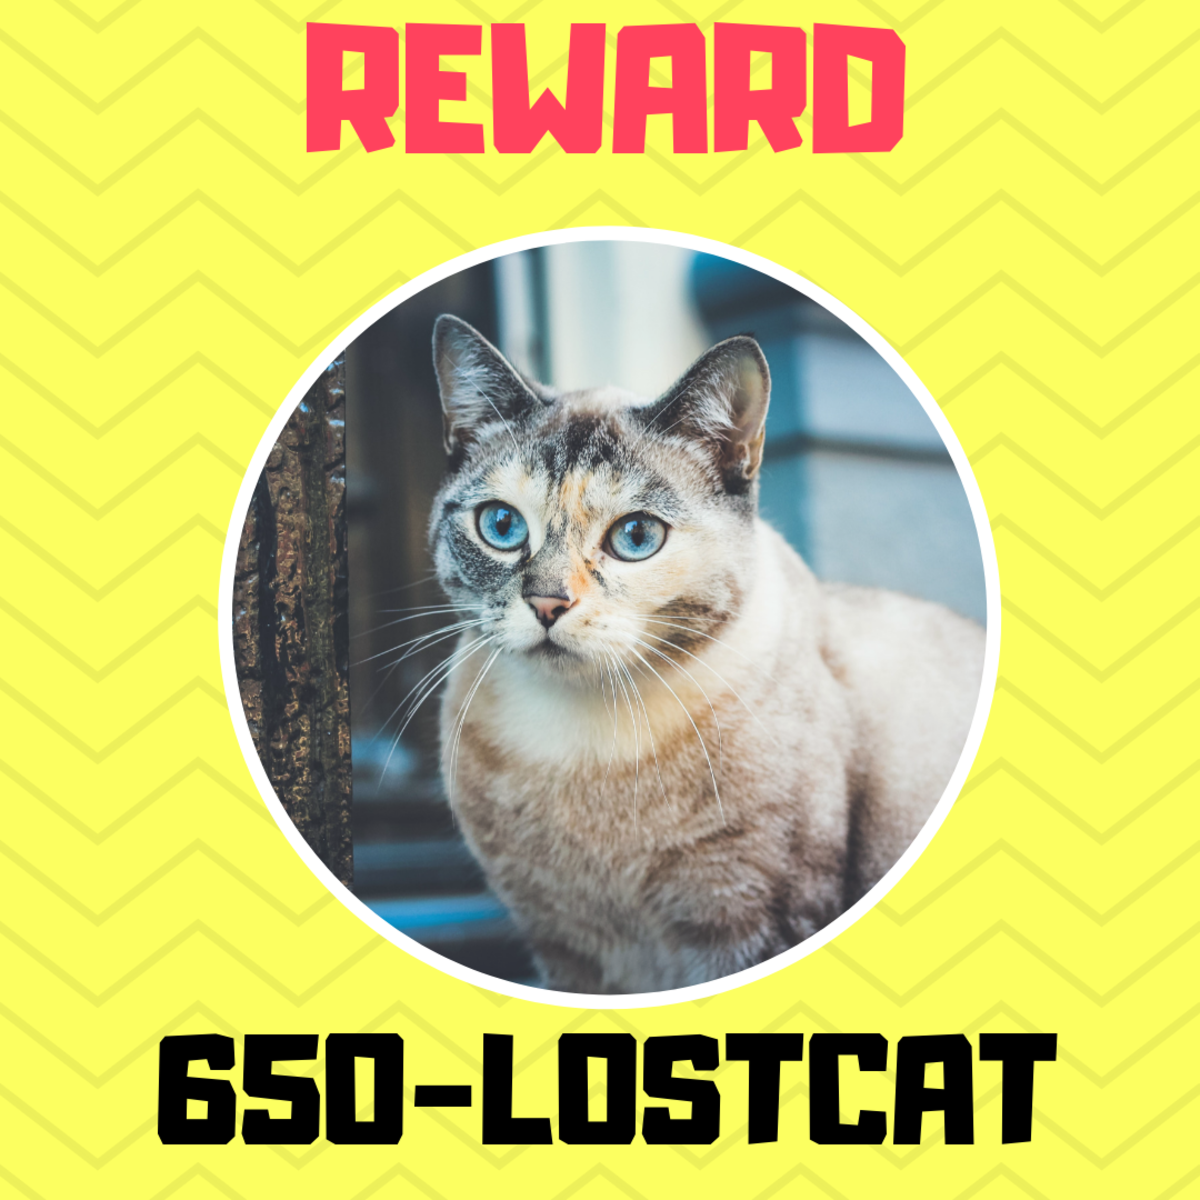 Example of a lost pet poster.